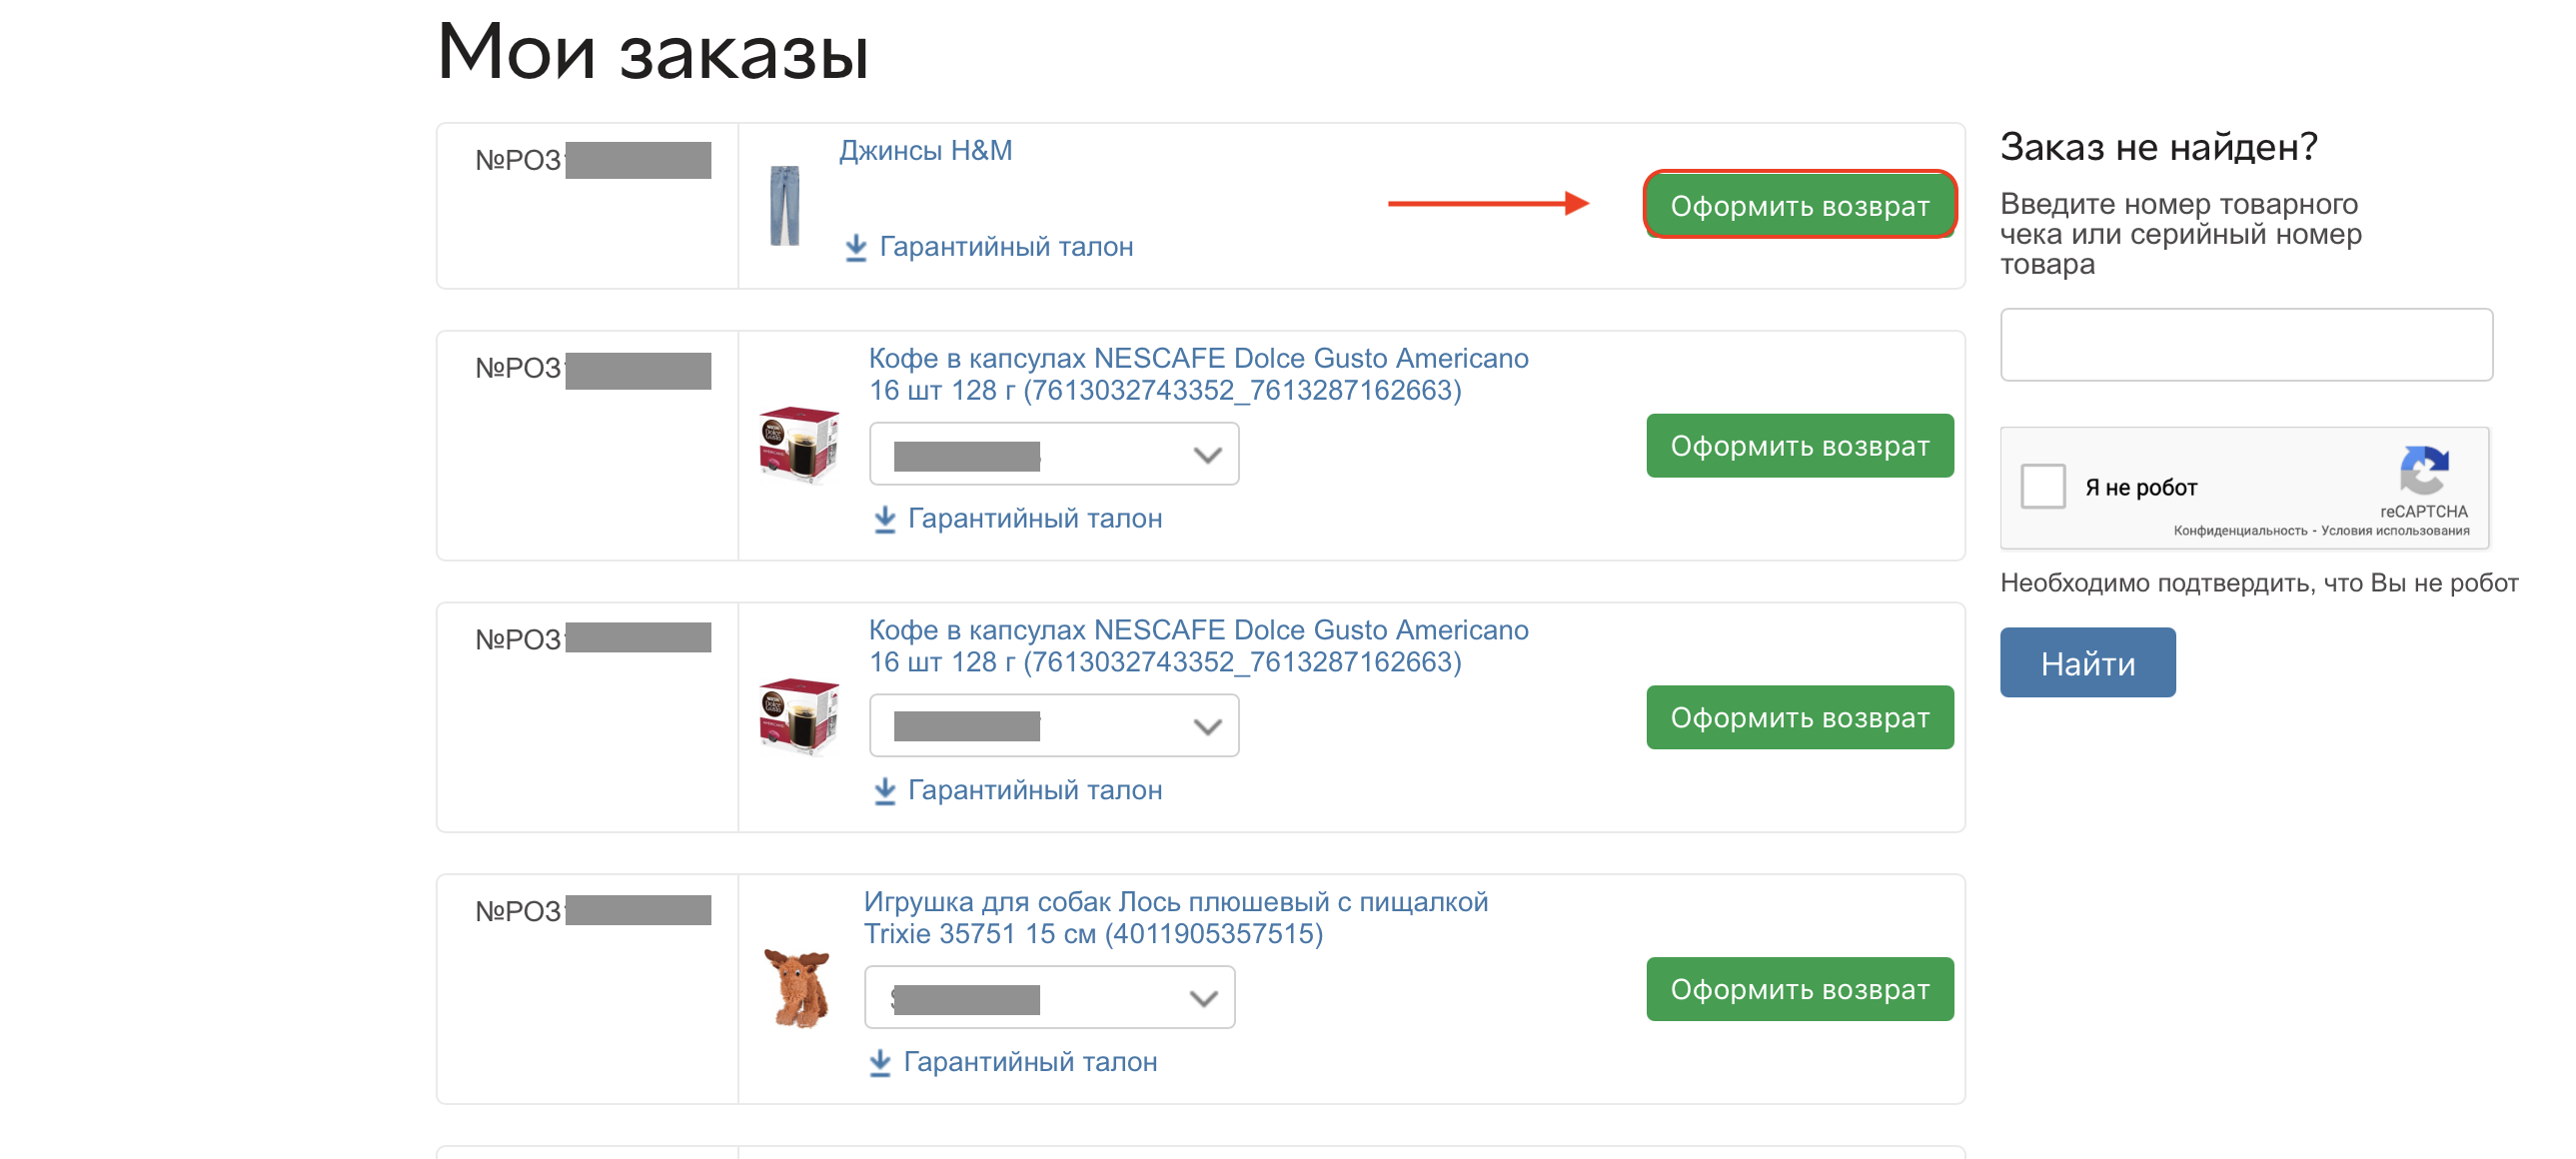 How To Return The Order To Rozetka Step By Step